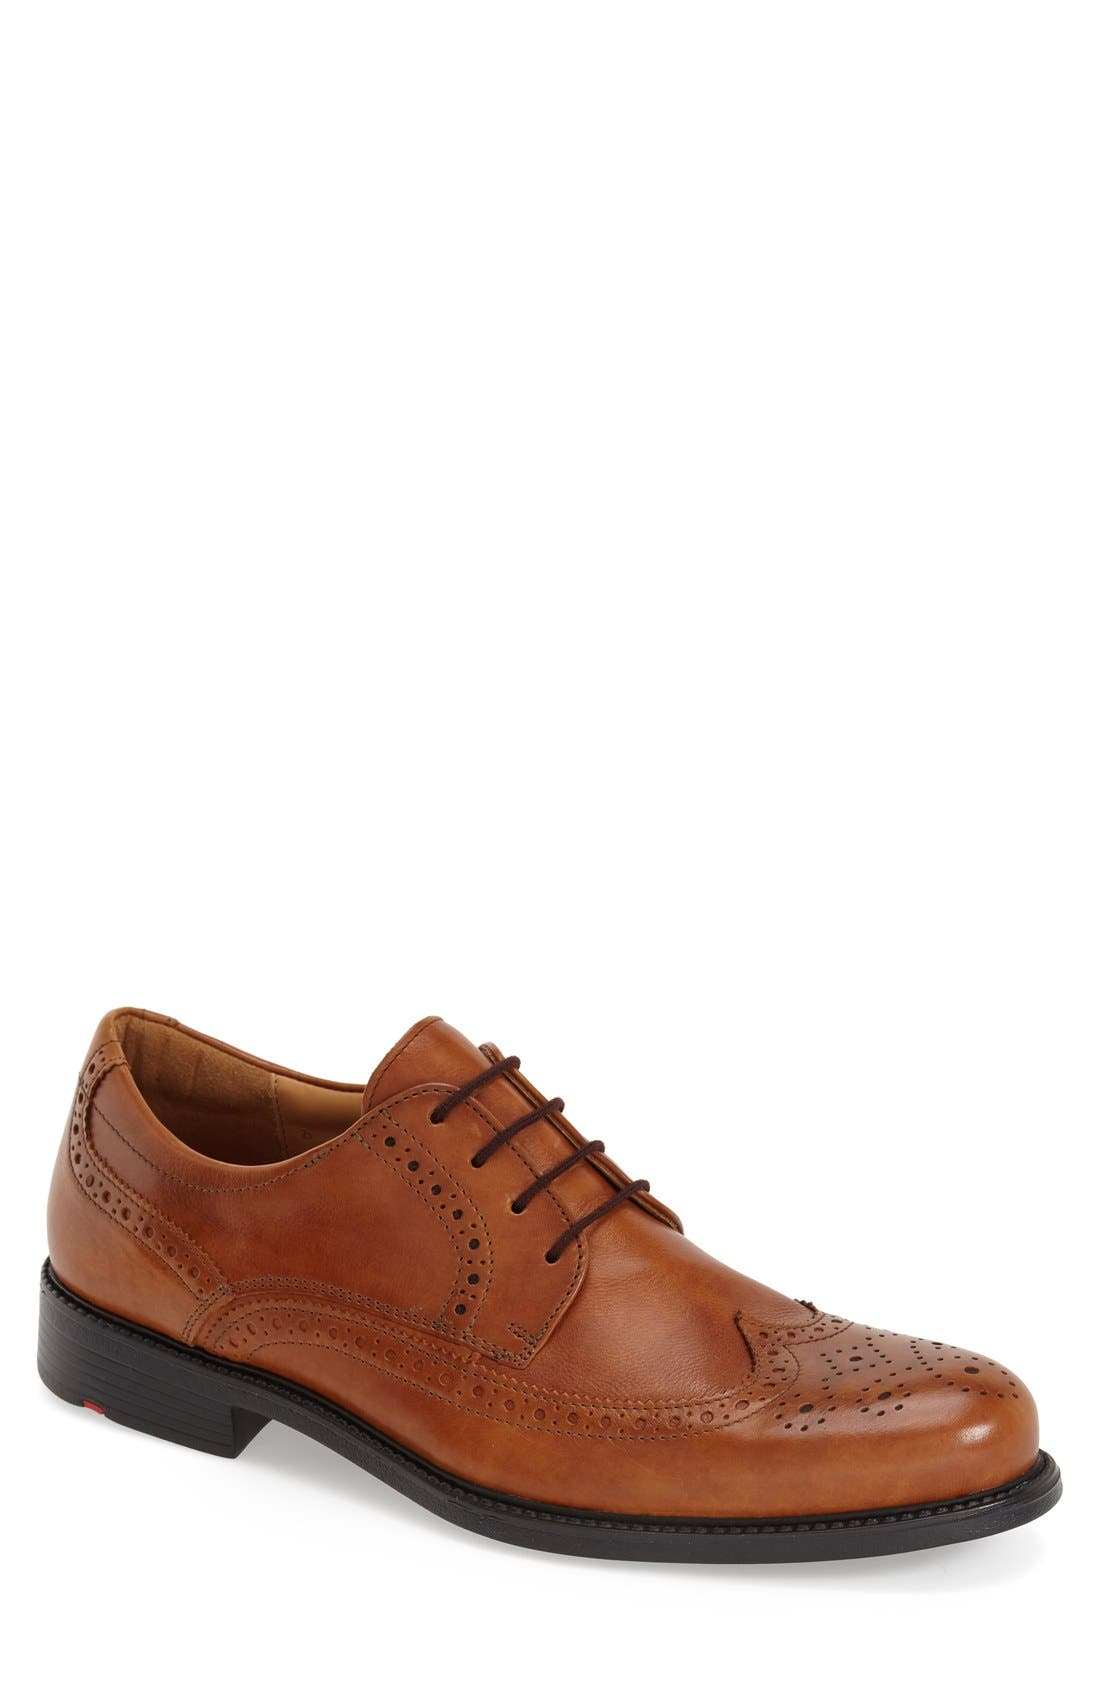 'Tampico' Wingtip Derby,                             Main thumbnail 1, color,                             236